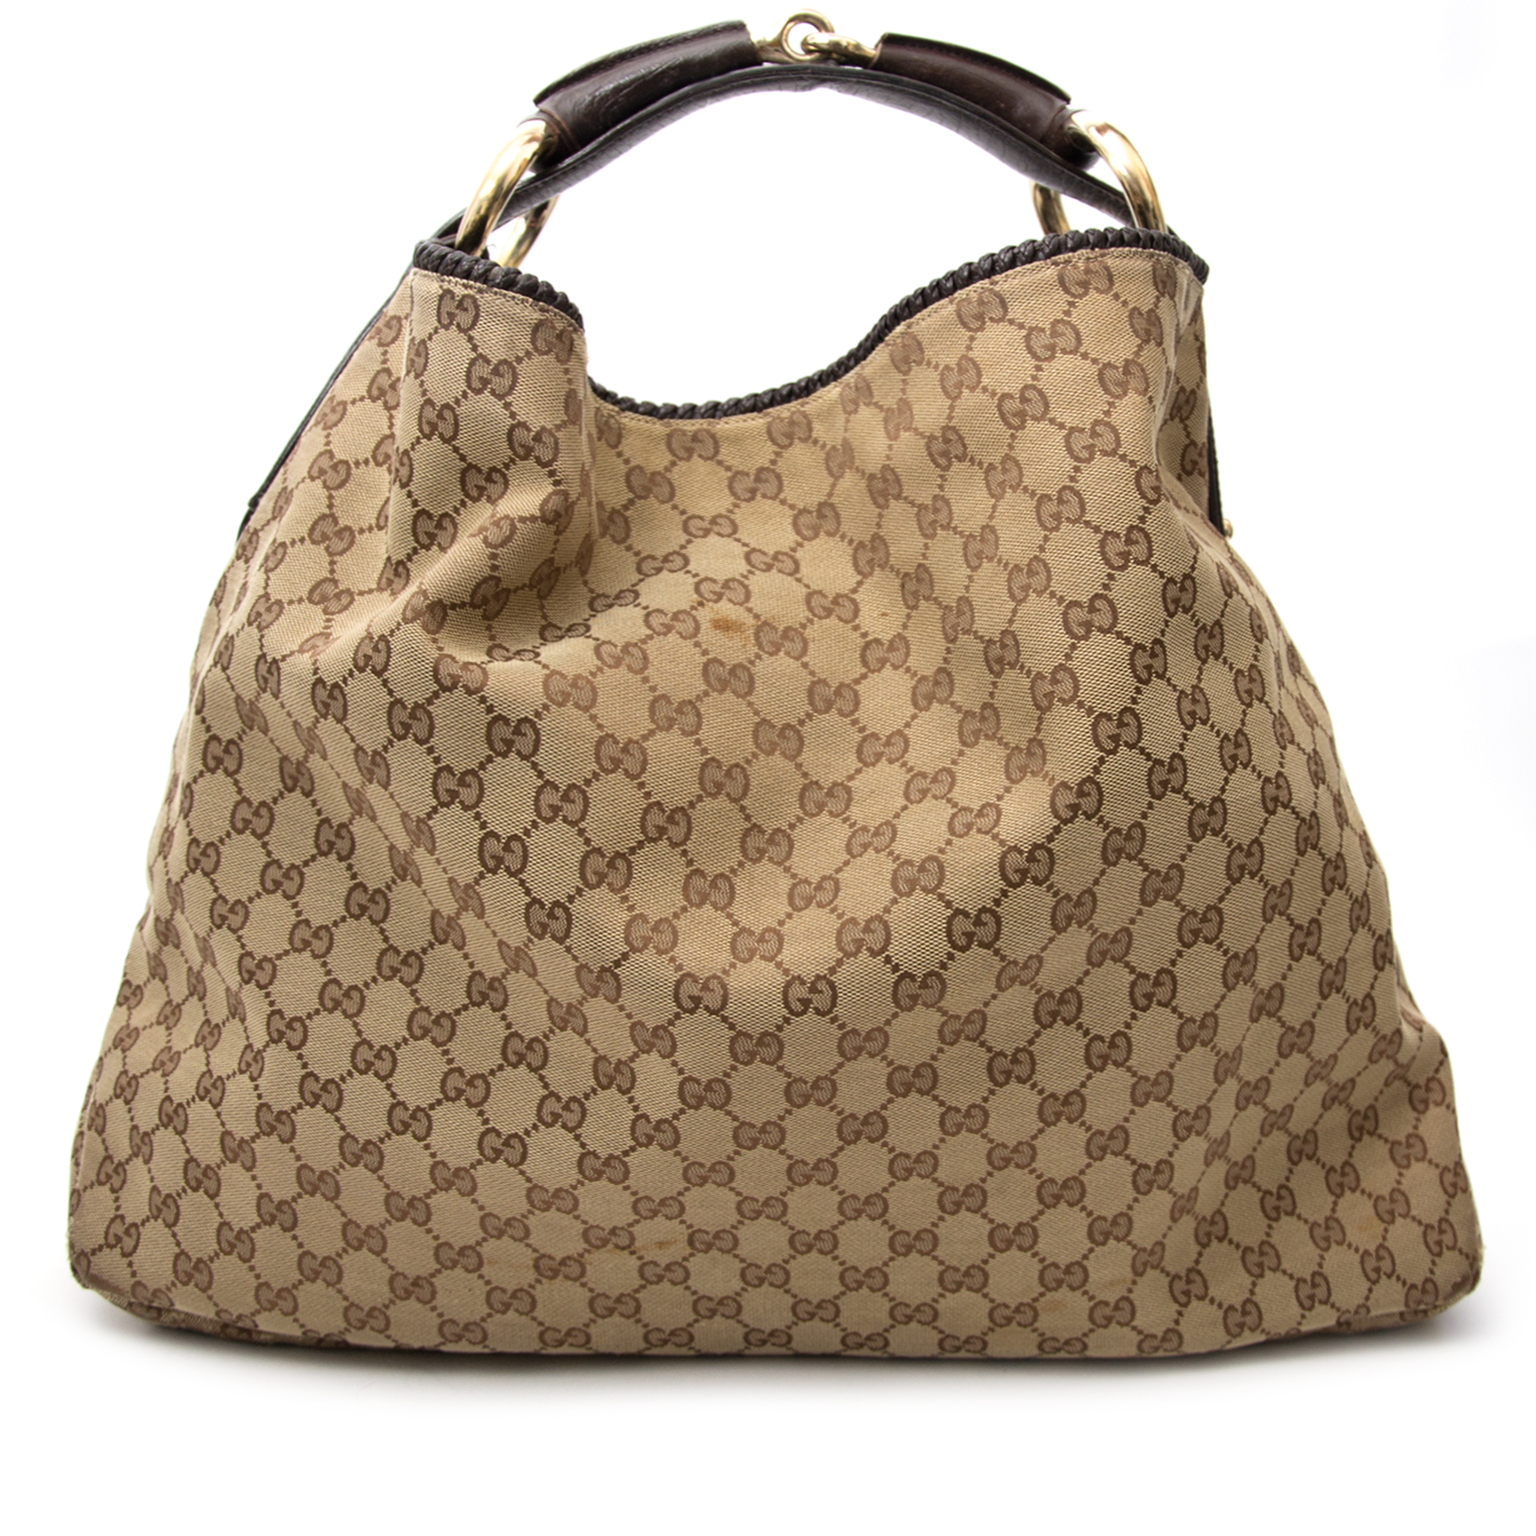 We buy and sell your secondhand designer handbags for the best price Gucci Brown Monogram Horsebit Bag